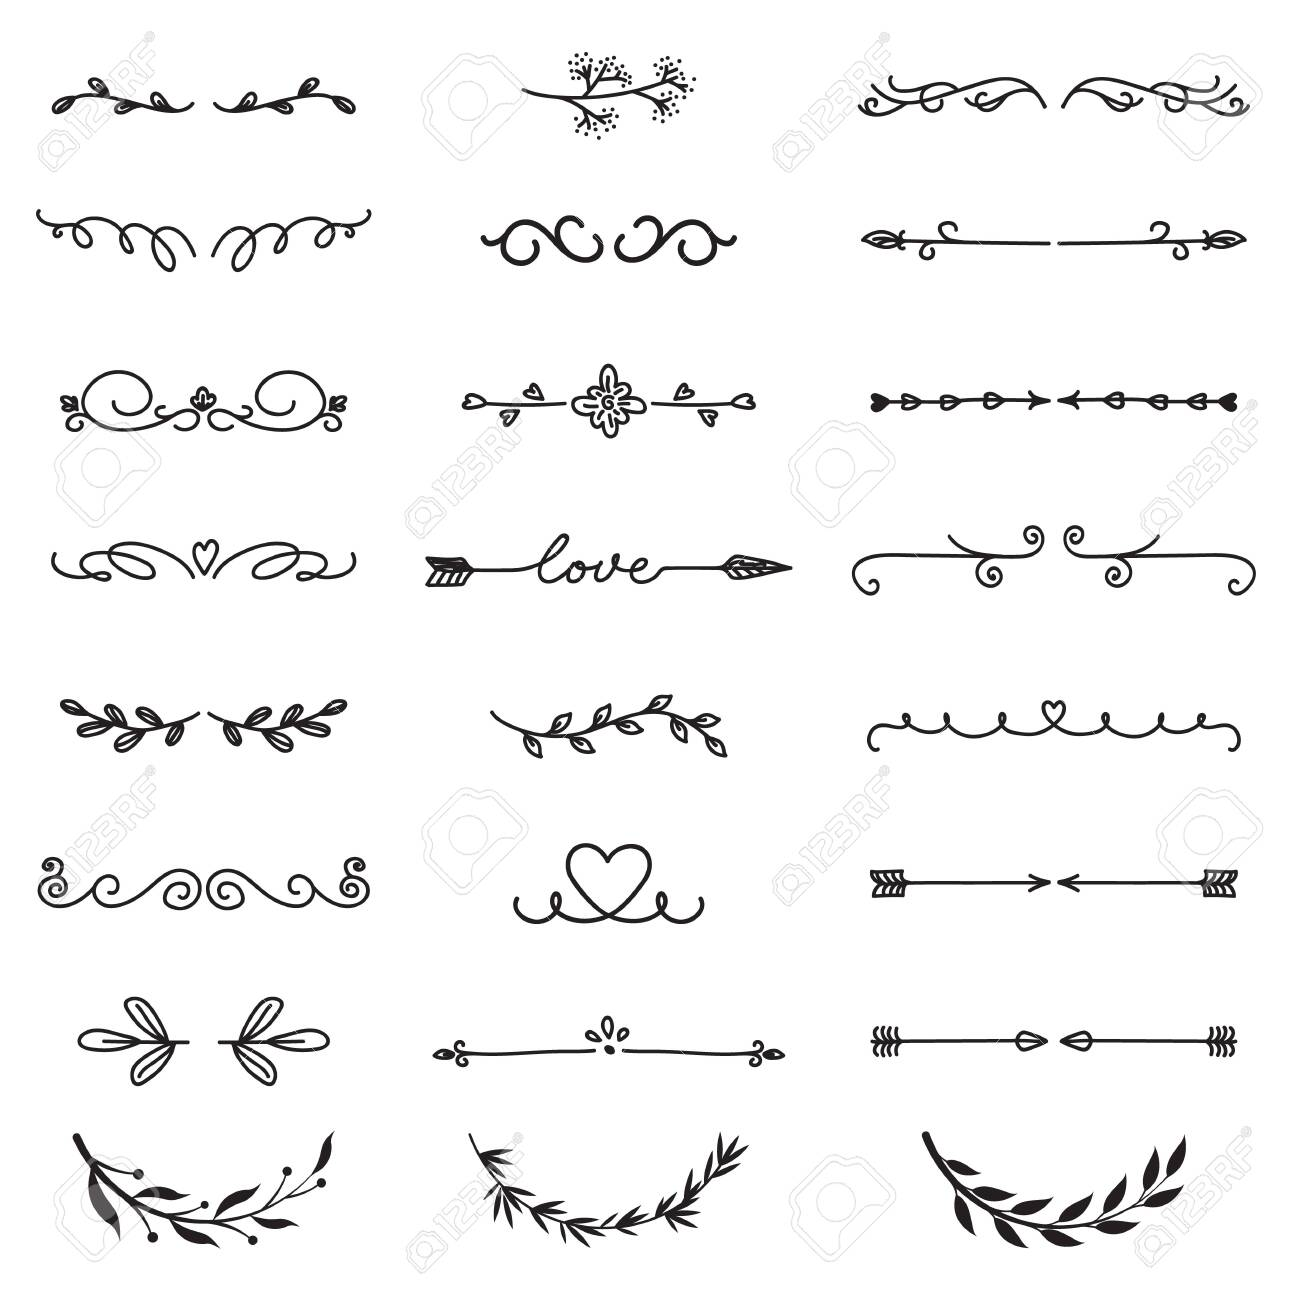 Various decorative text dividers set. Black hand drawn ornament borders and calligraphic elements isolated vector illustration collection. Decoration and ornaments concept - 150009921